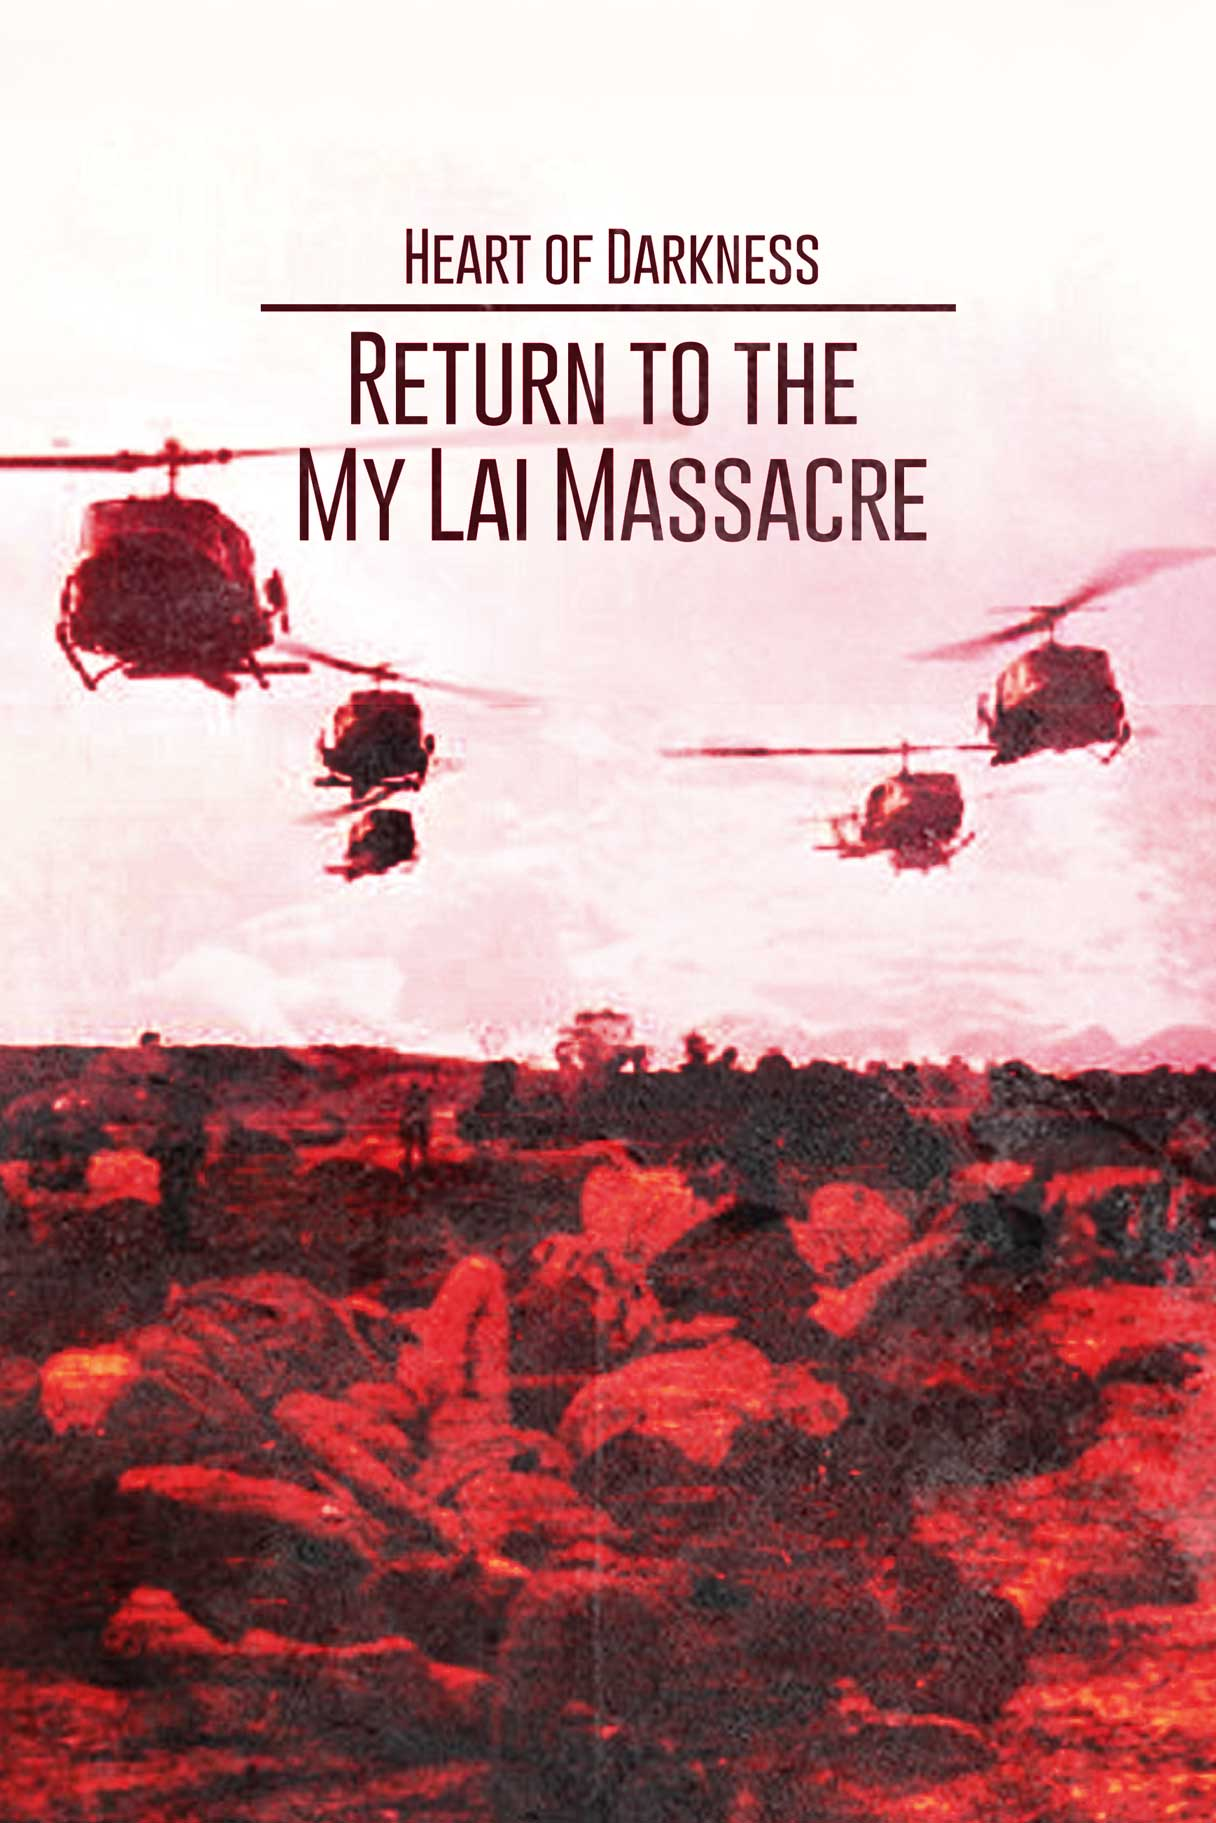 Heart of Darkness: Return to the My Lai Massacre